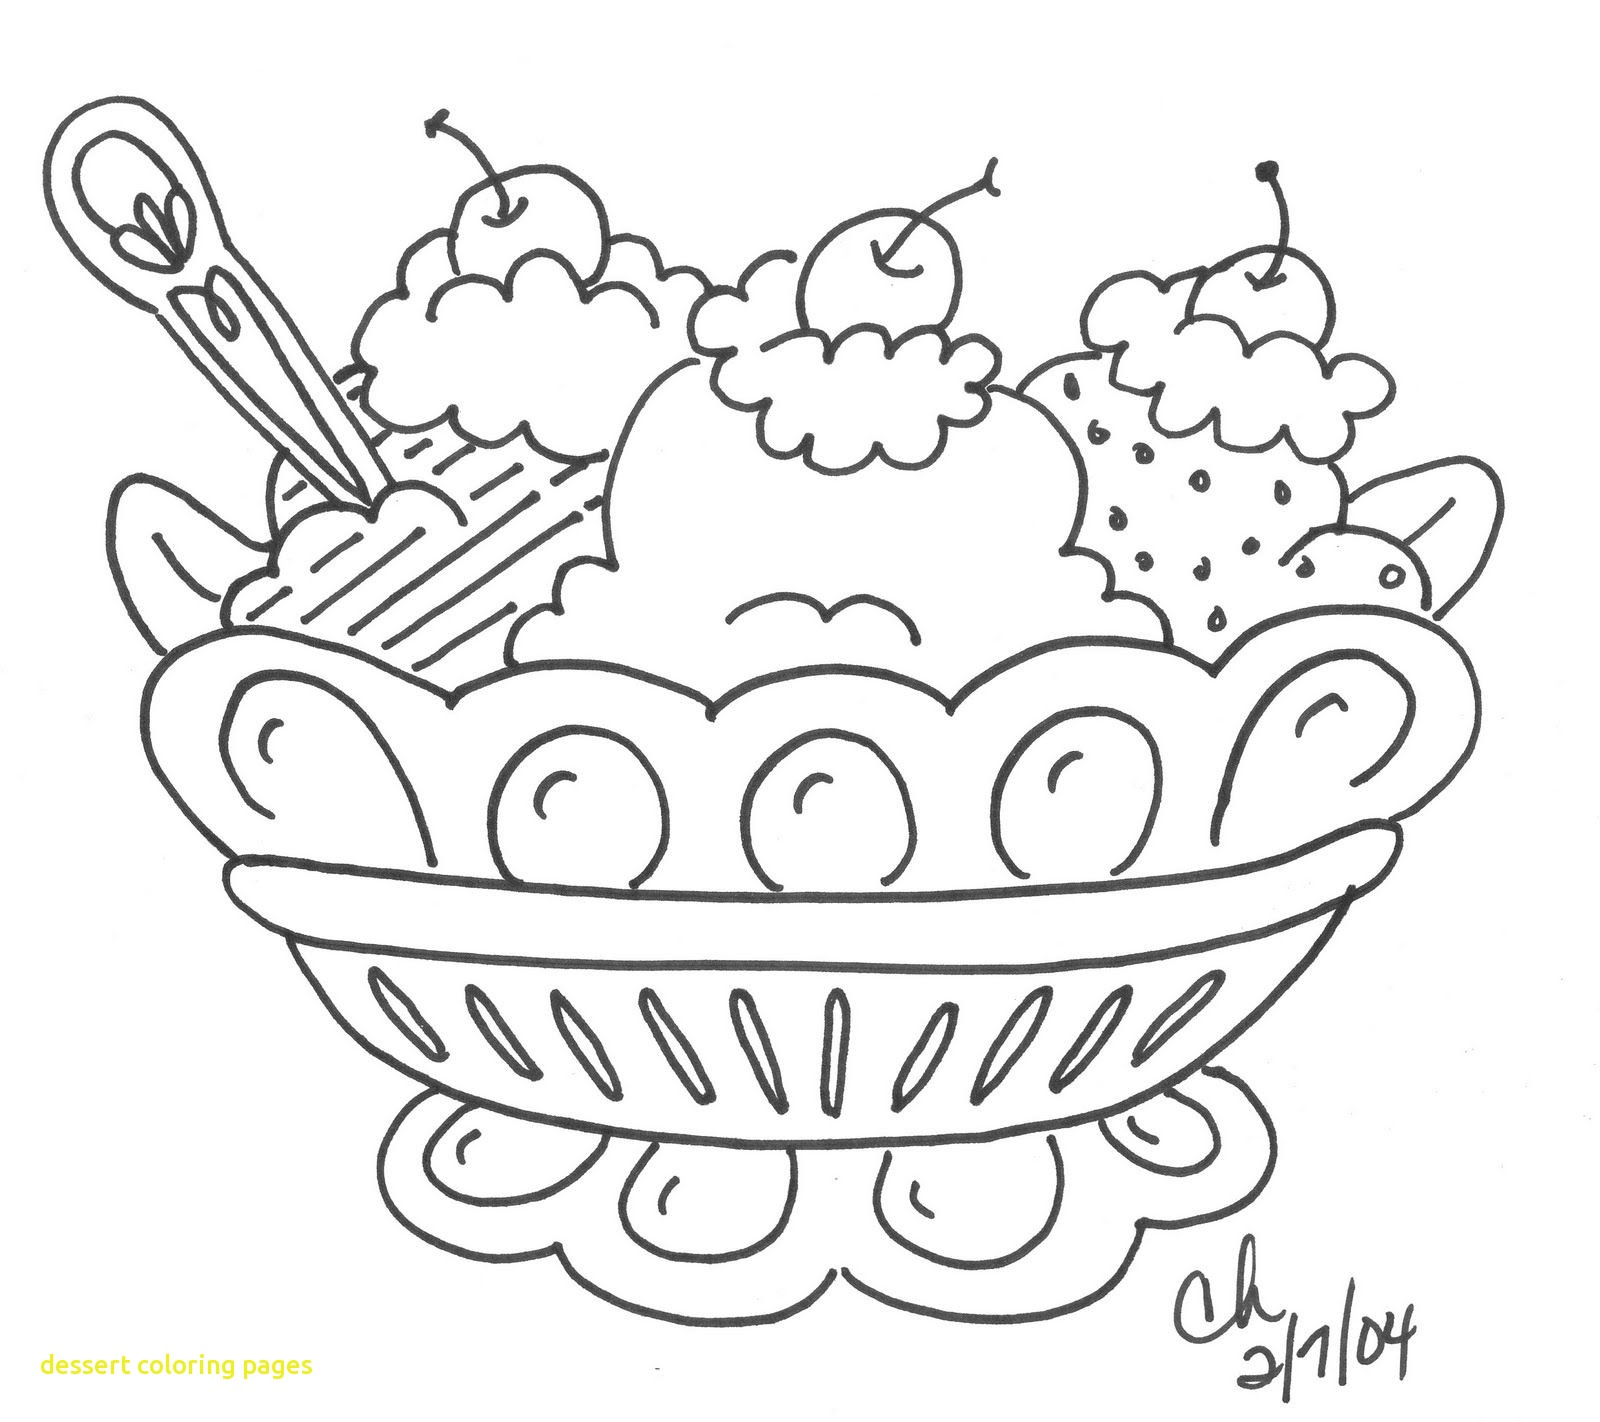 1600x1422 Dessert Coloring Pages With Dessert Coloring Pages To Download